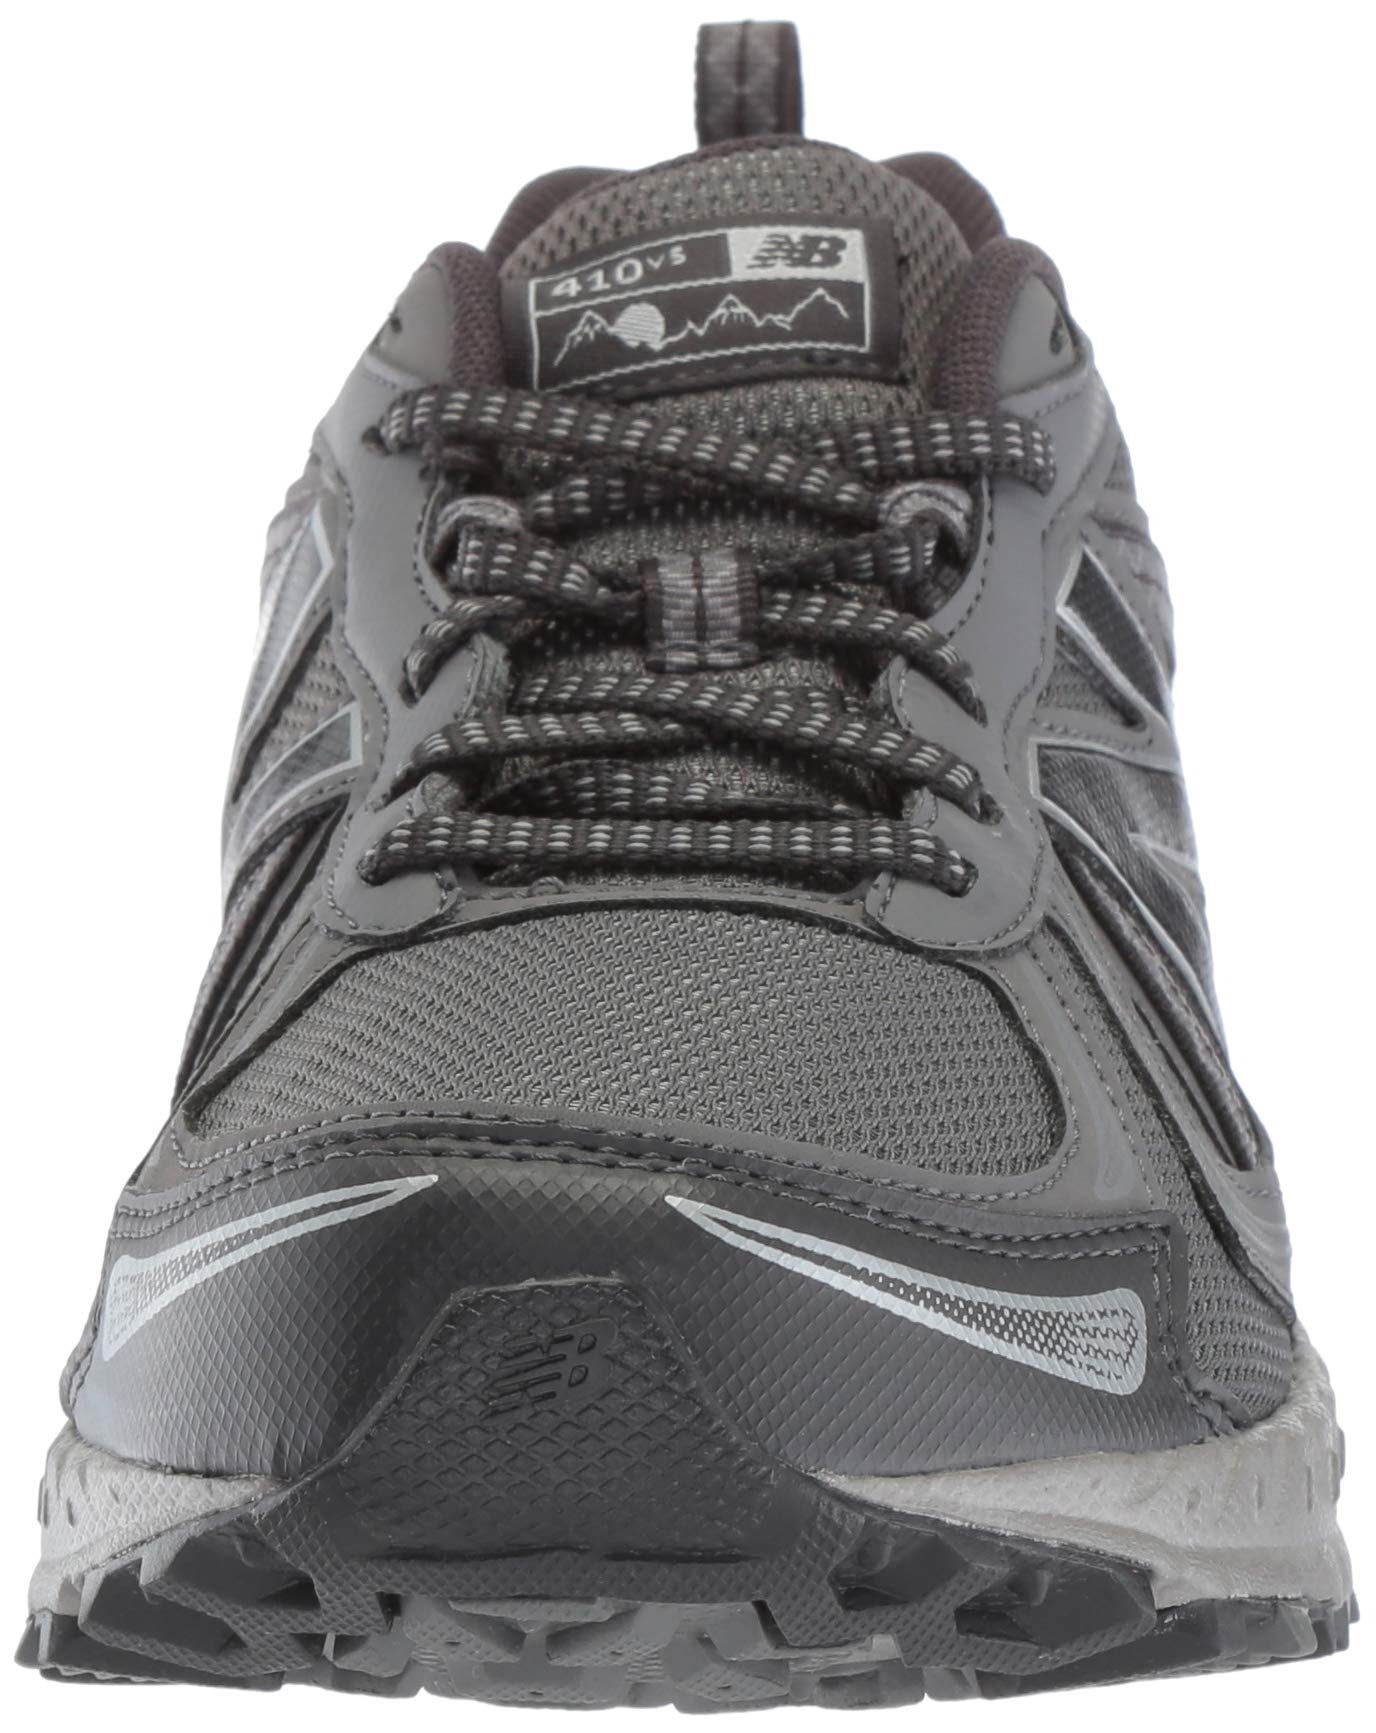 New Balance Men's 410v5 Cushioning Trail Running Shoe, Castlerock/Phantom, 7 D US by New Balance (Image #4)